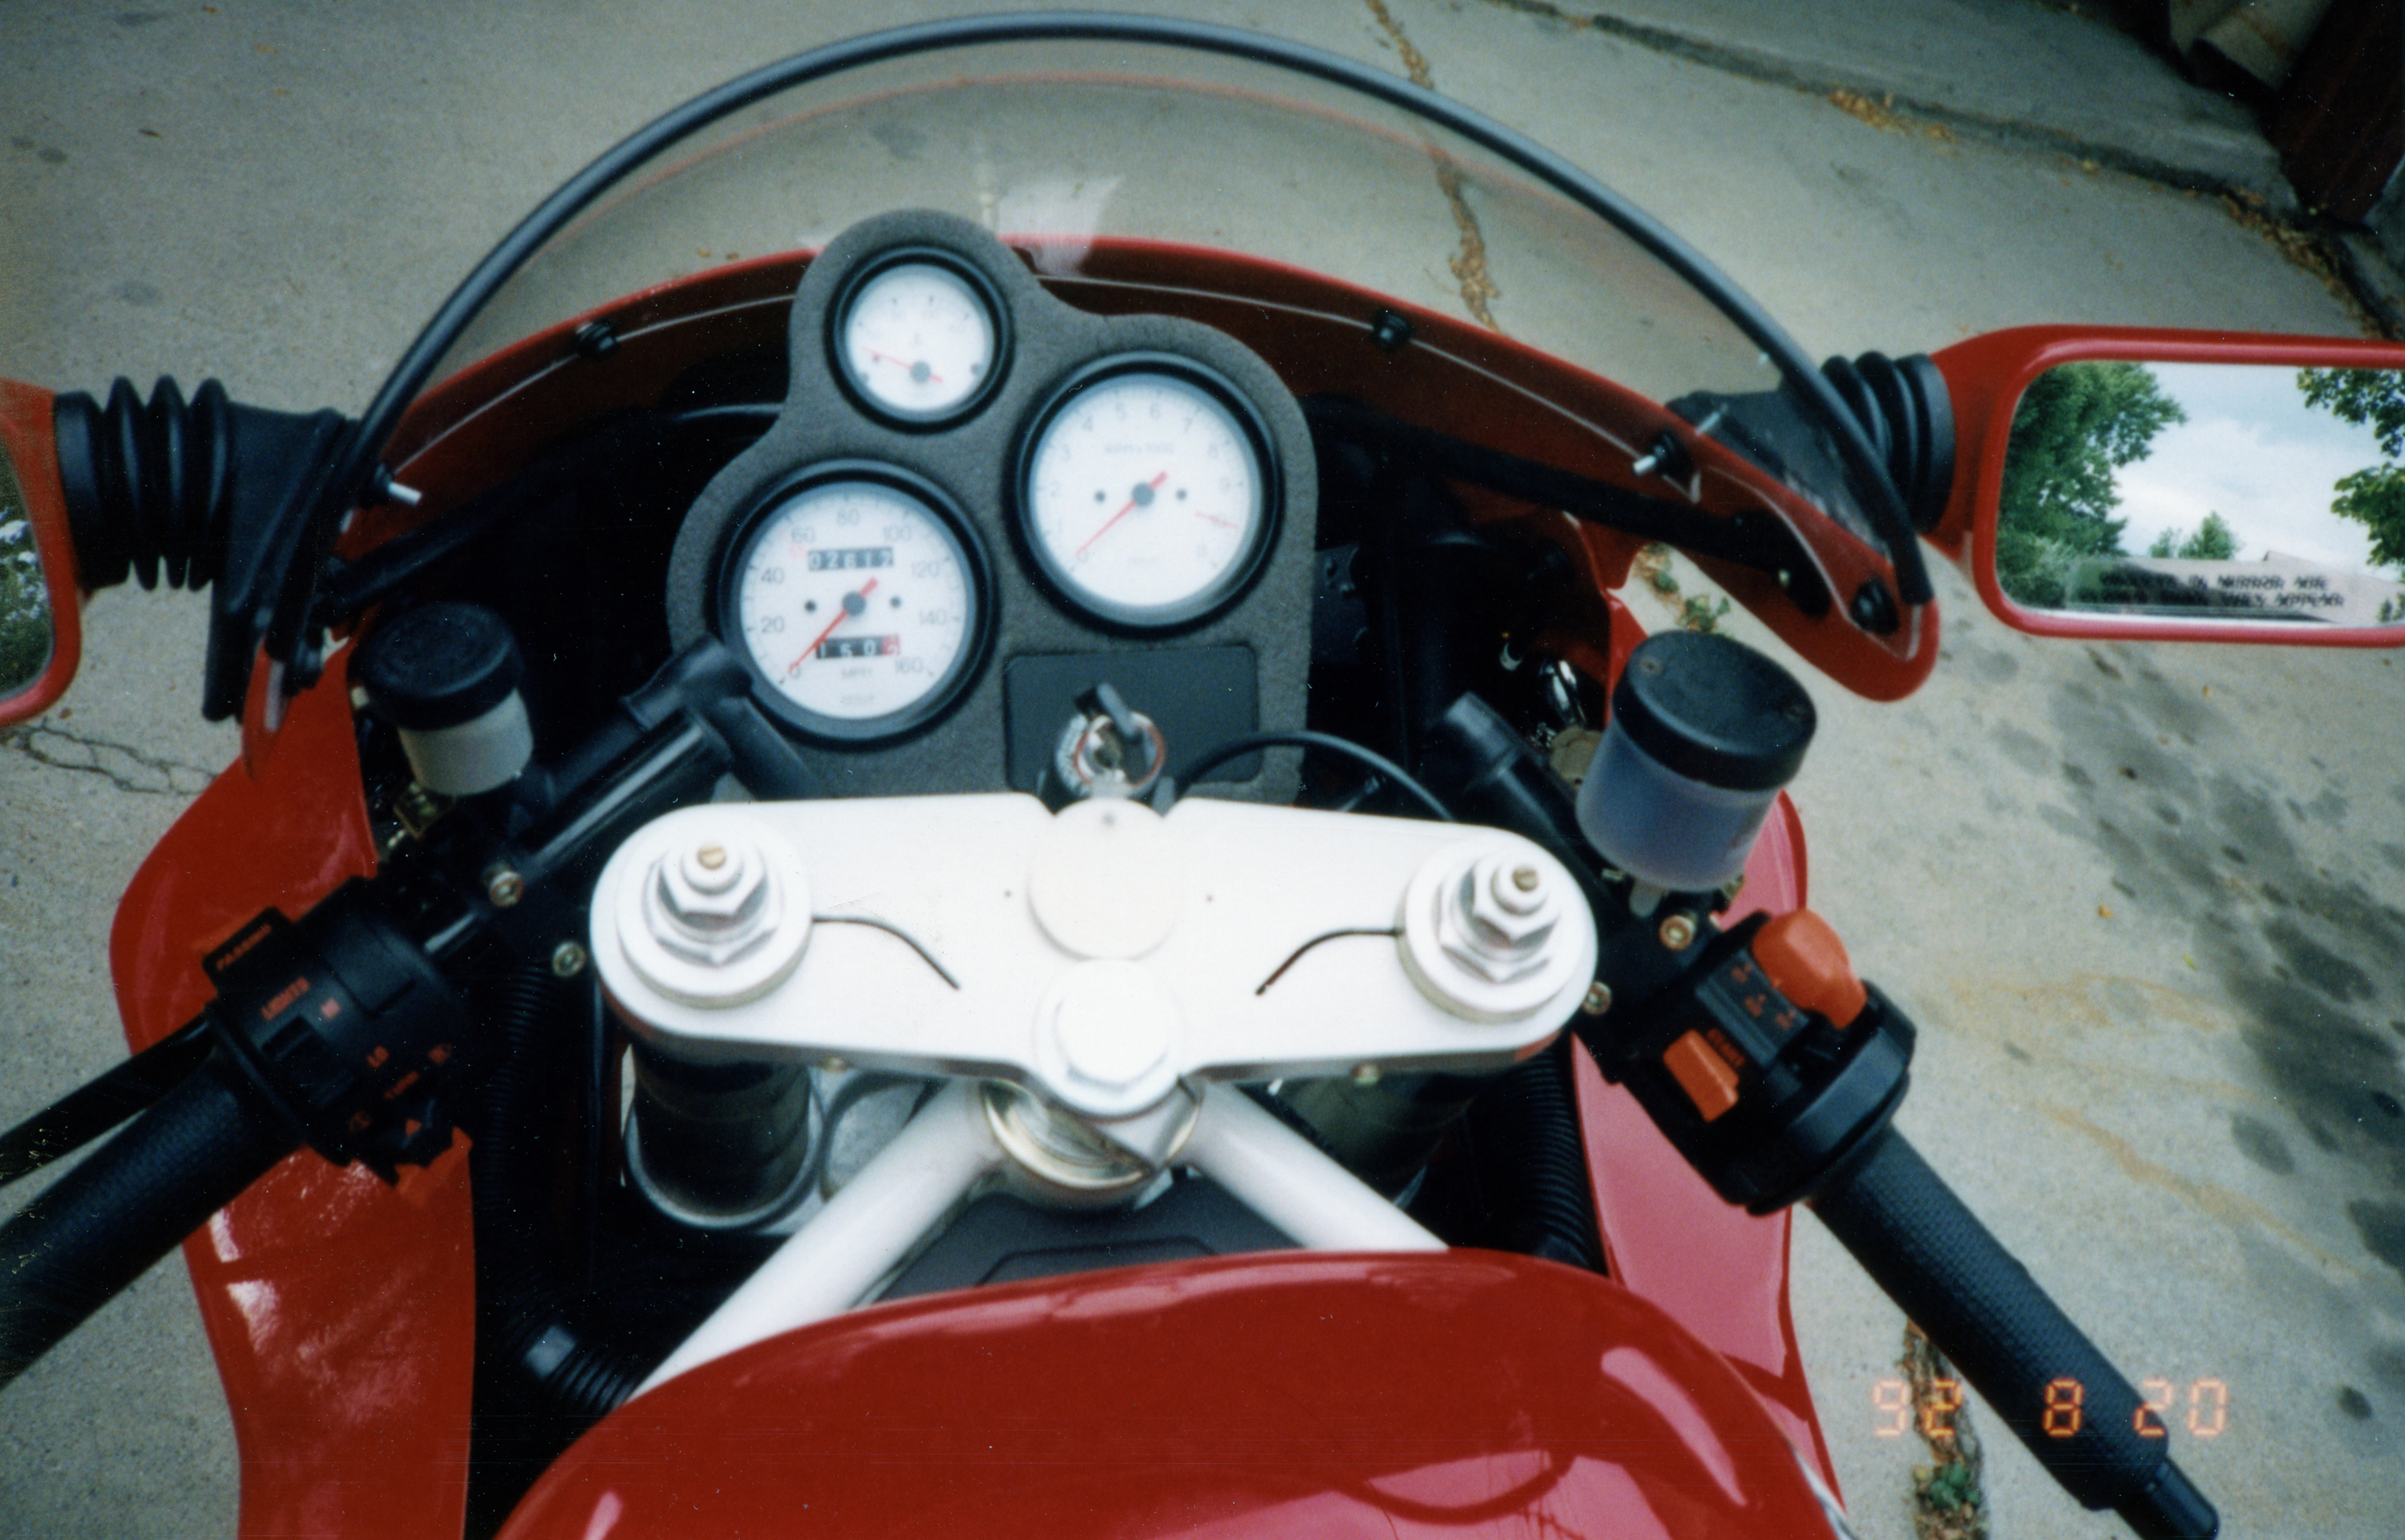 1991 Ducati 851 Superbike Gauges